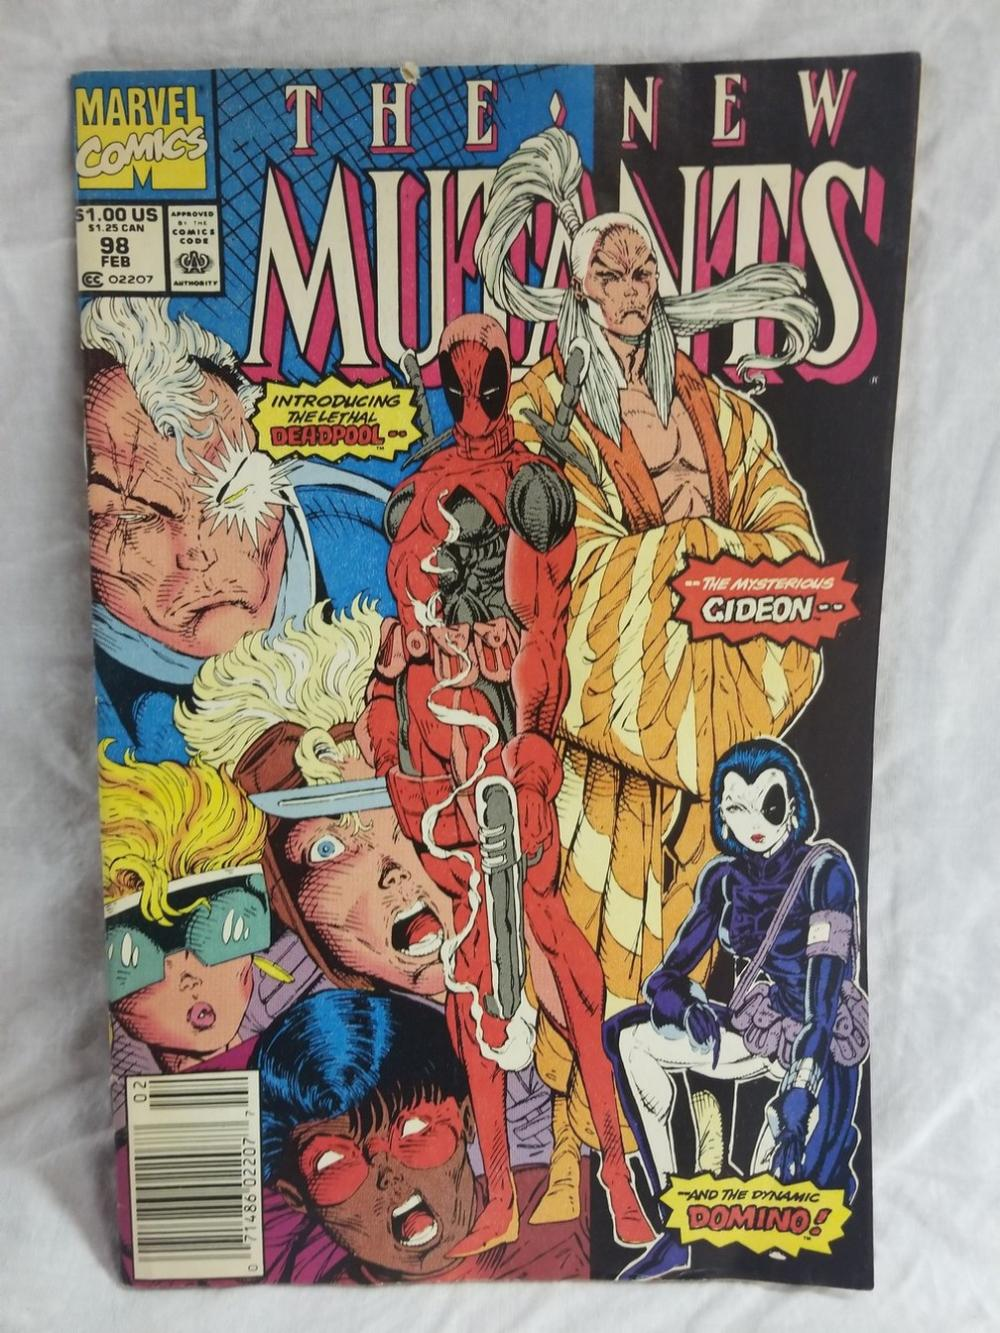 The New Mutants Volume 1 Issue 98